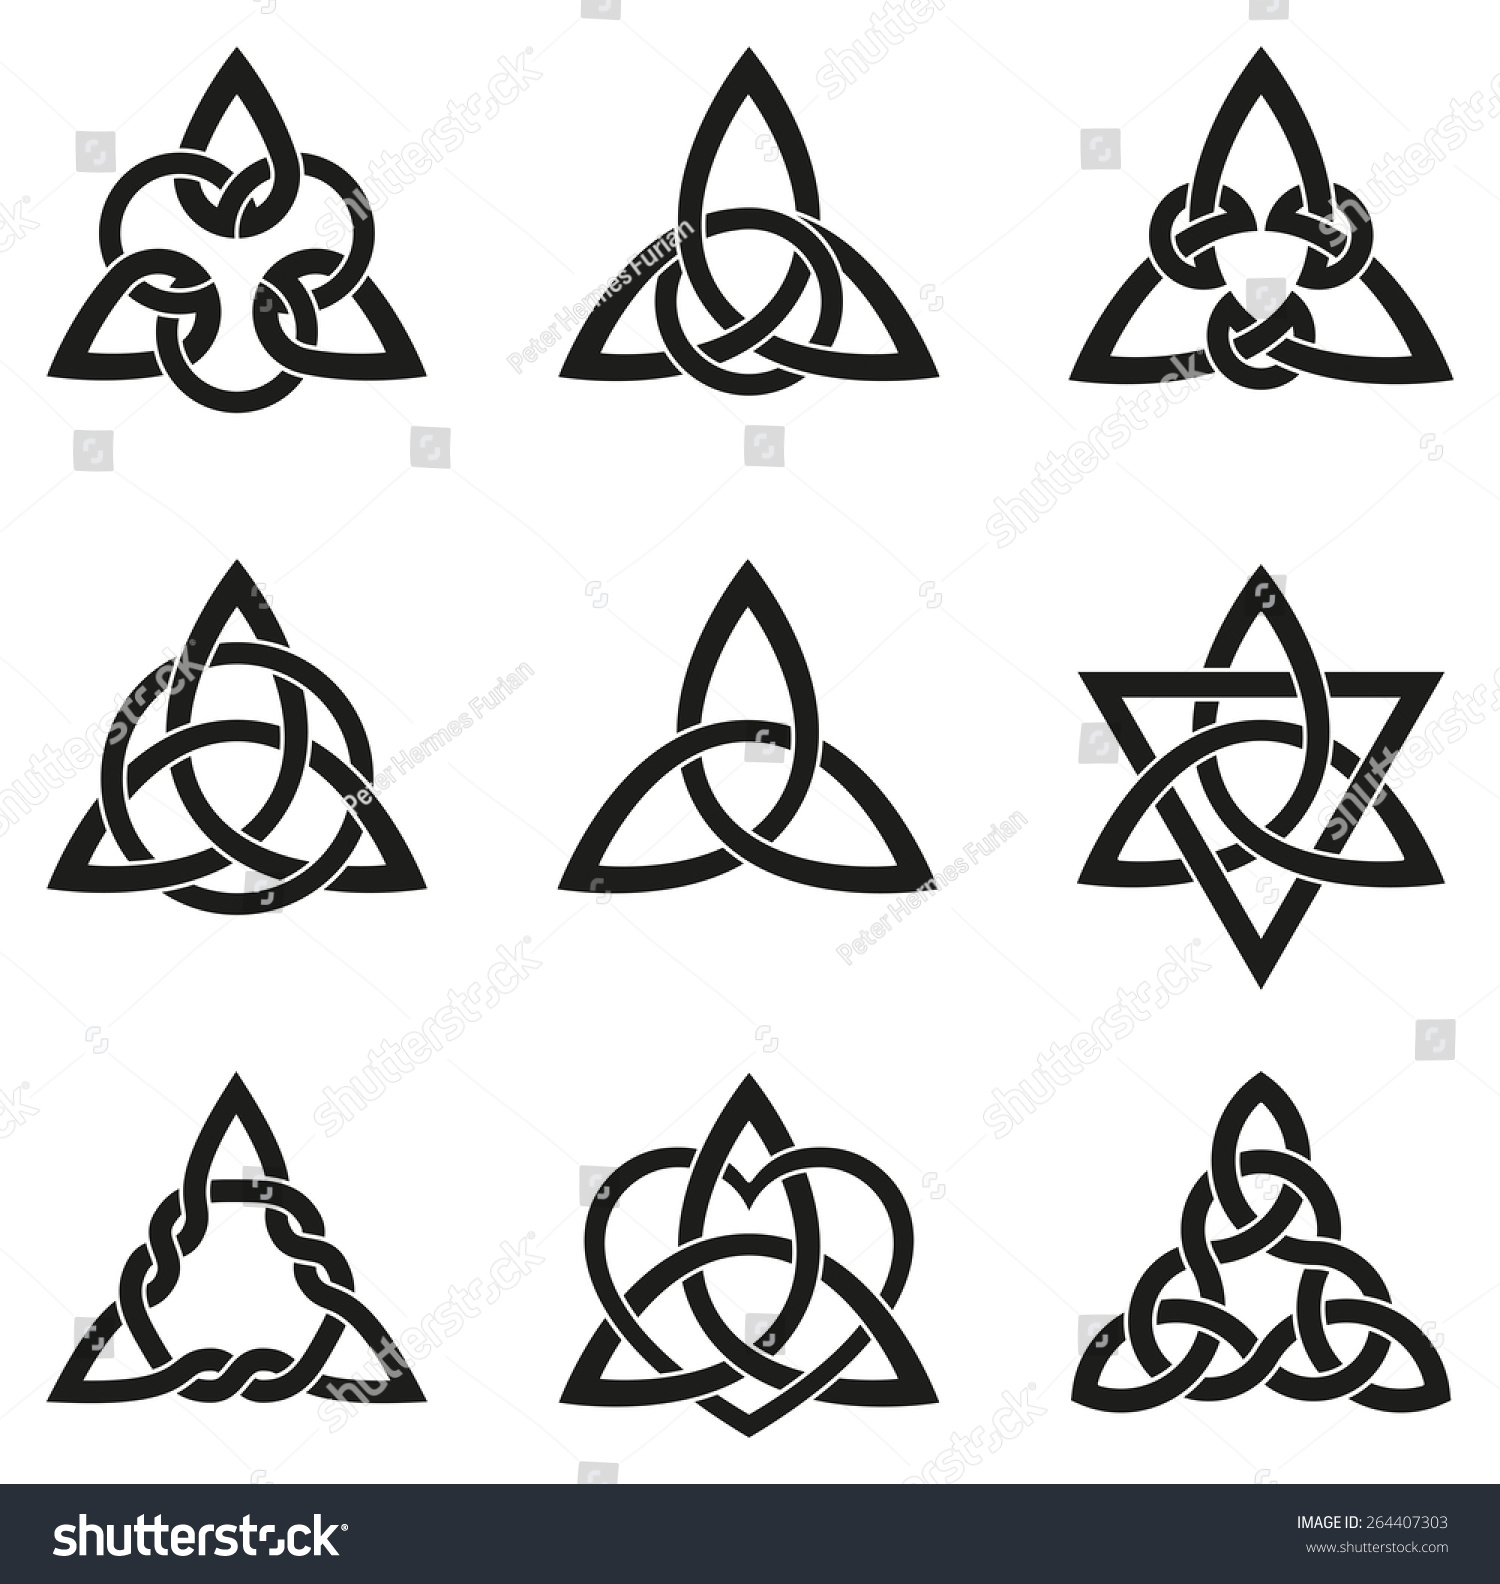 Celtic knots used decoration tattoos nine stock vector 264407303 celtic knots used for decoration or tattoos nine endless basket weave knots these knots buycottarizona